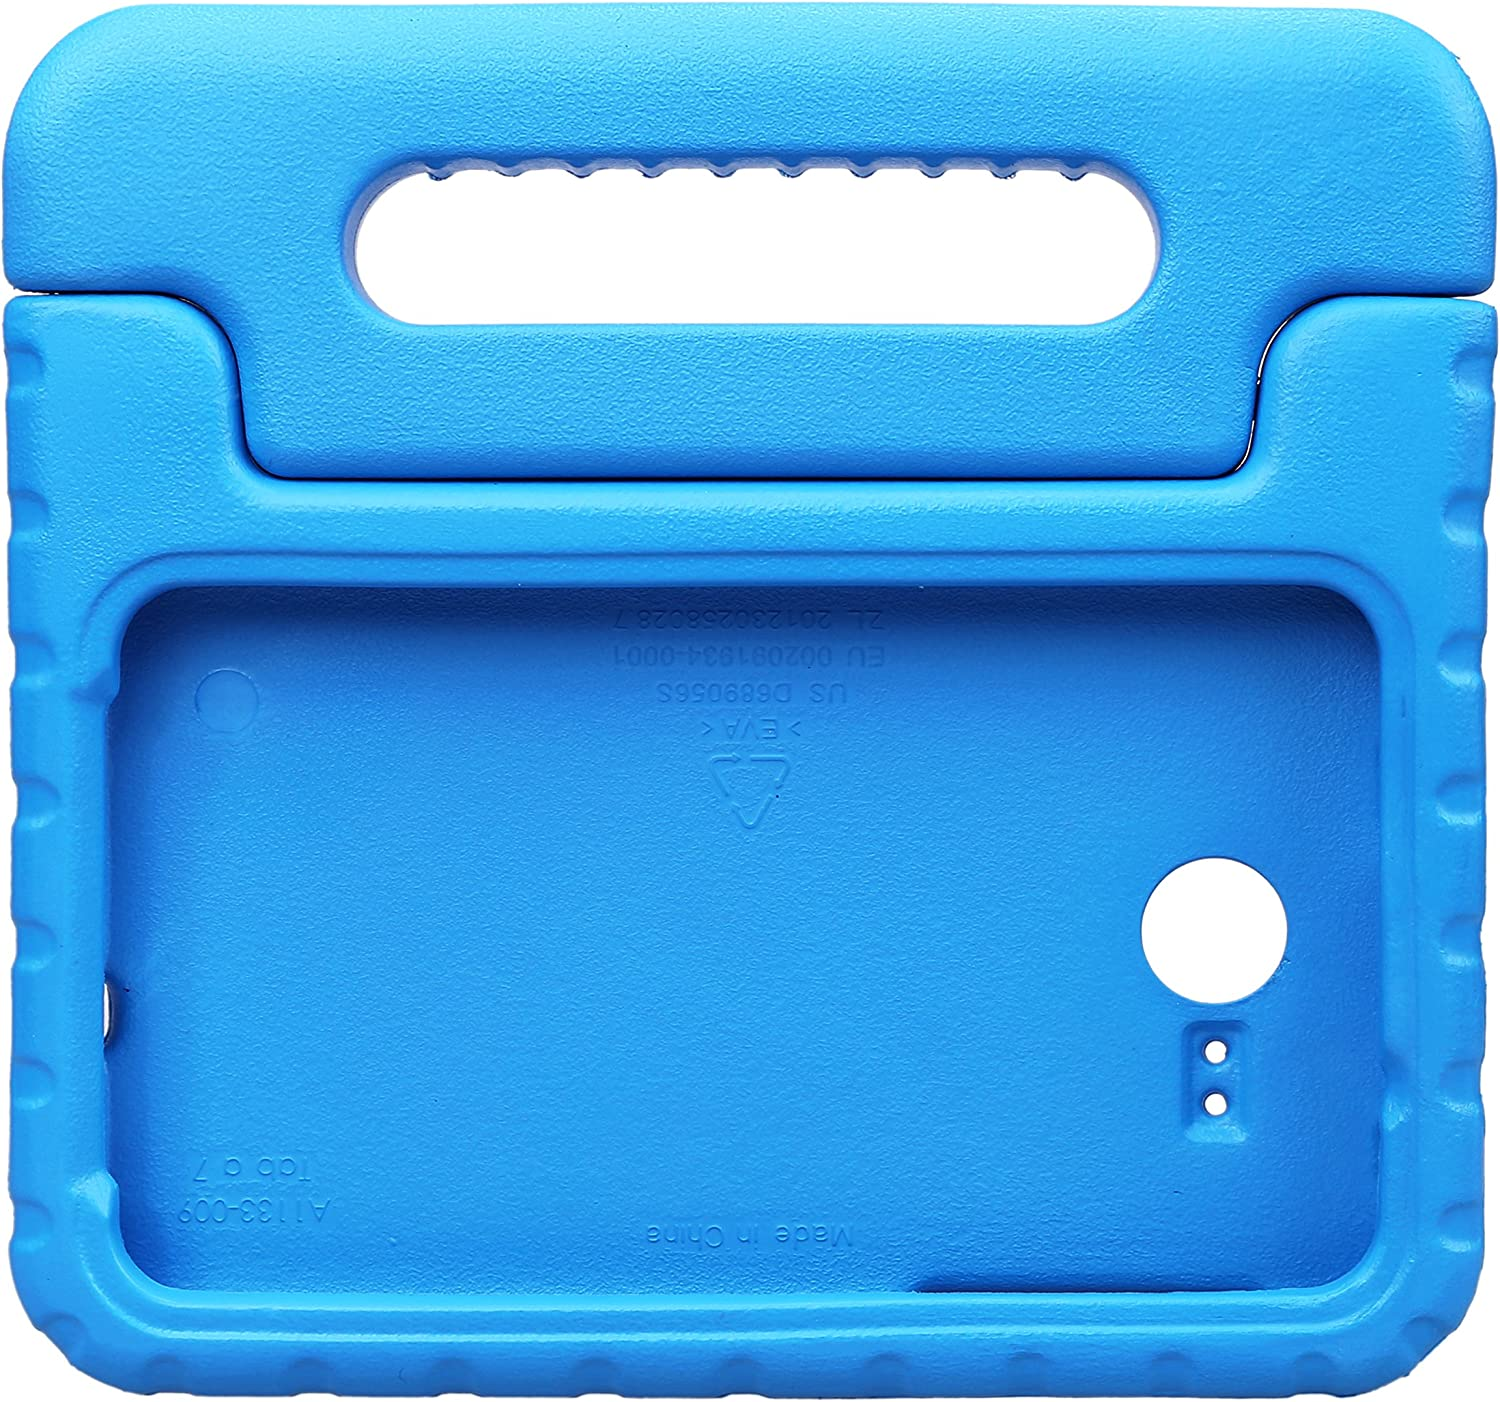 NEWSTYLE Tab A 7.0 Kids Case - Shockproof Light Weight Protection Handle Stand Kids Case for 2016 Samsung Galaxy TAB A 7.0 inch Tablet (Not Fit Any Other 7.0 Tablet Model) (Blue)